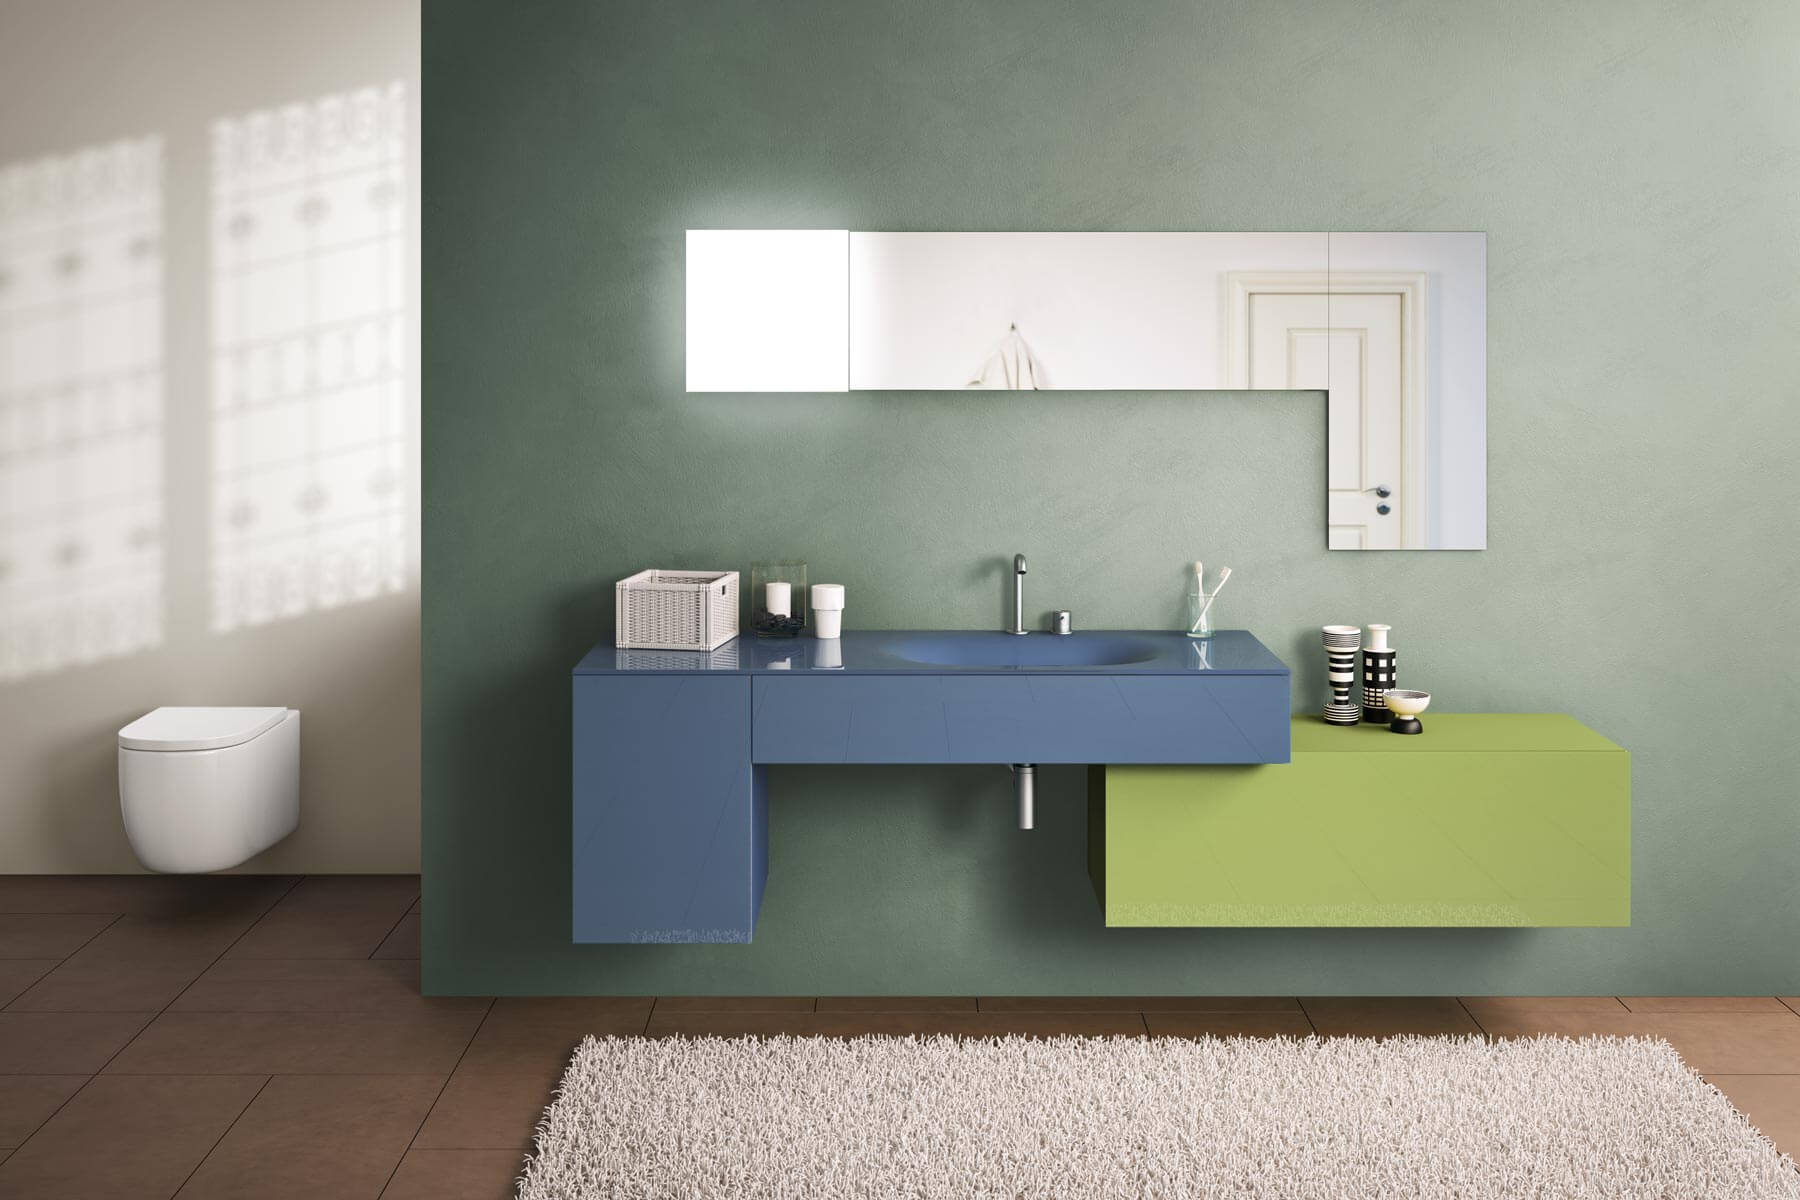 Basin and Storage Bathroom Furniture